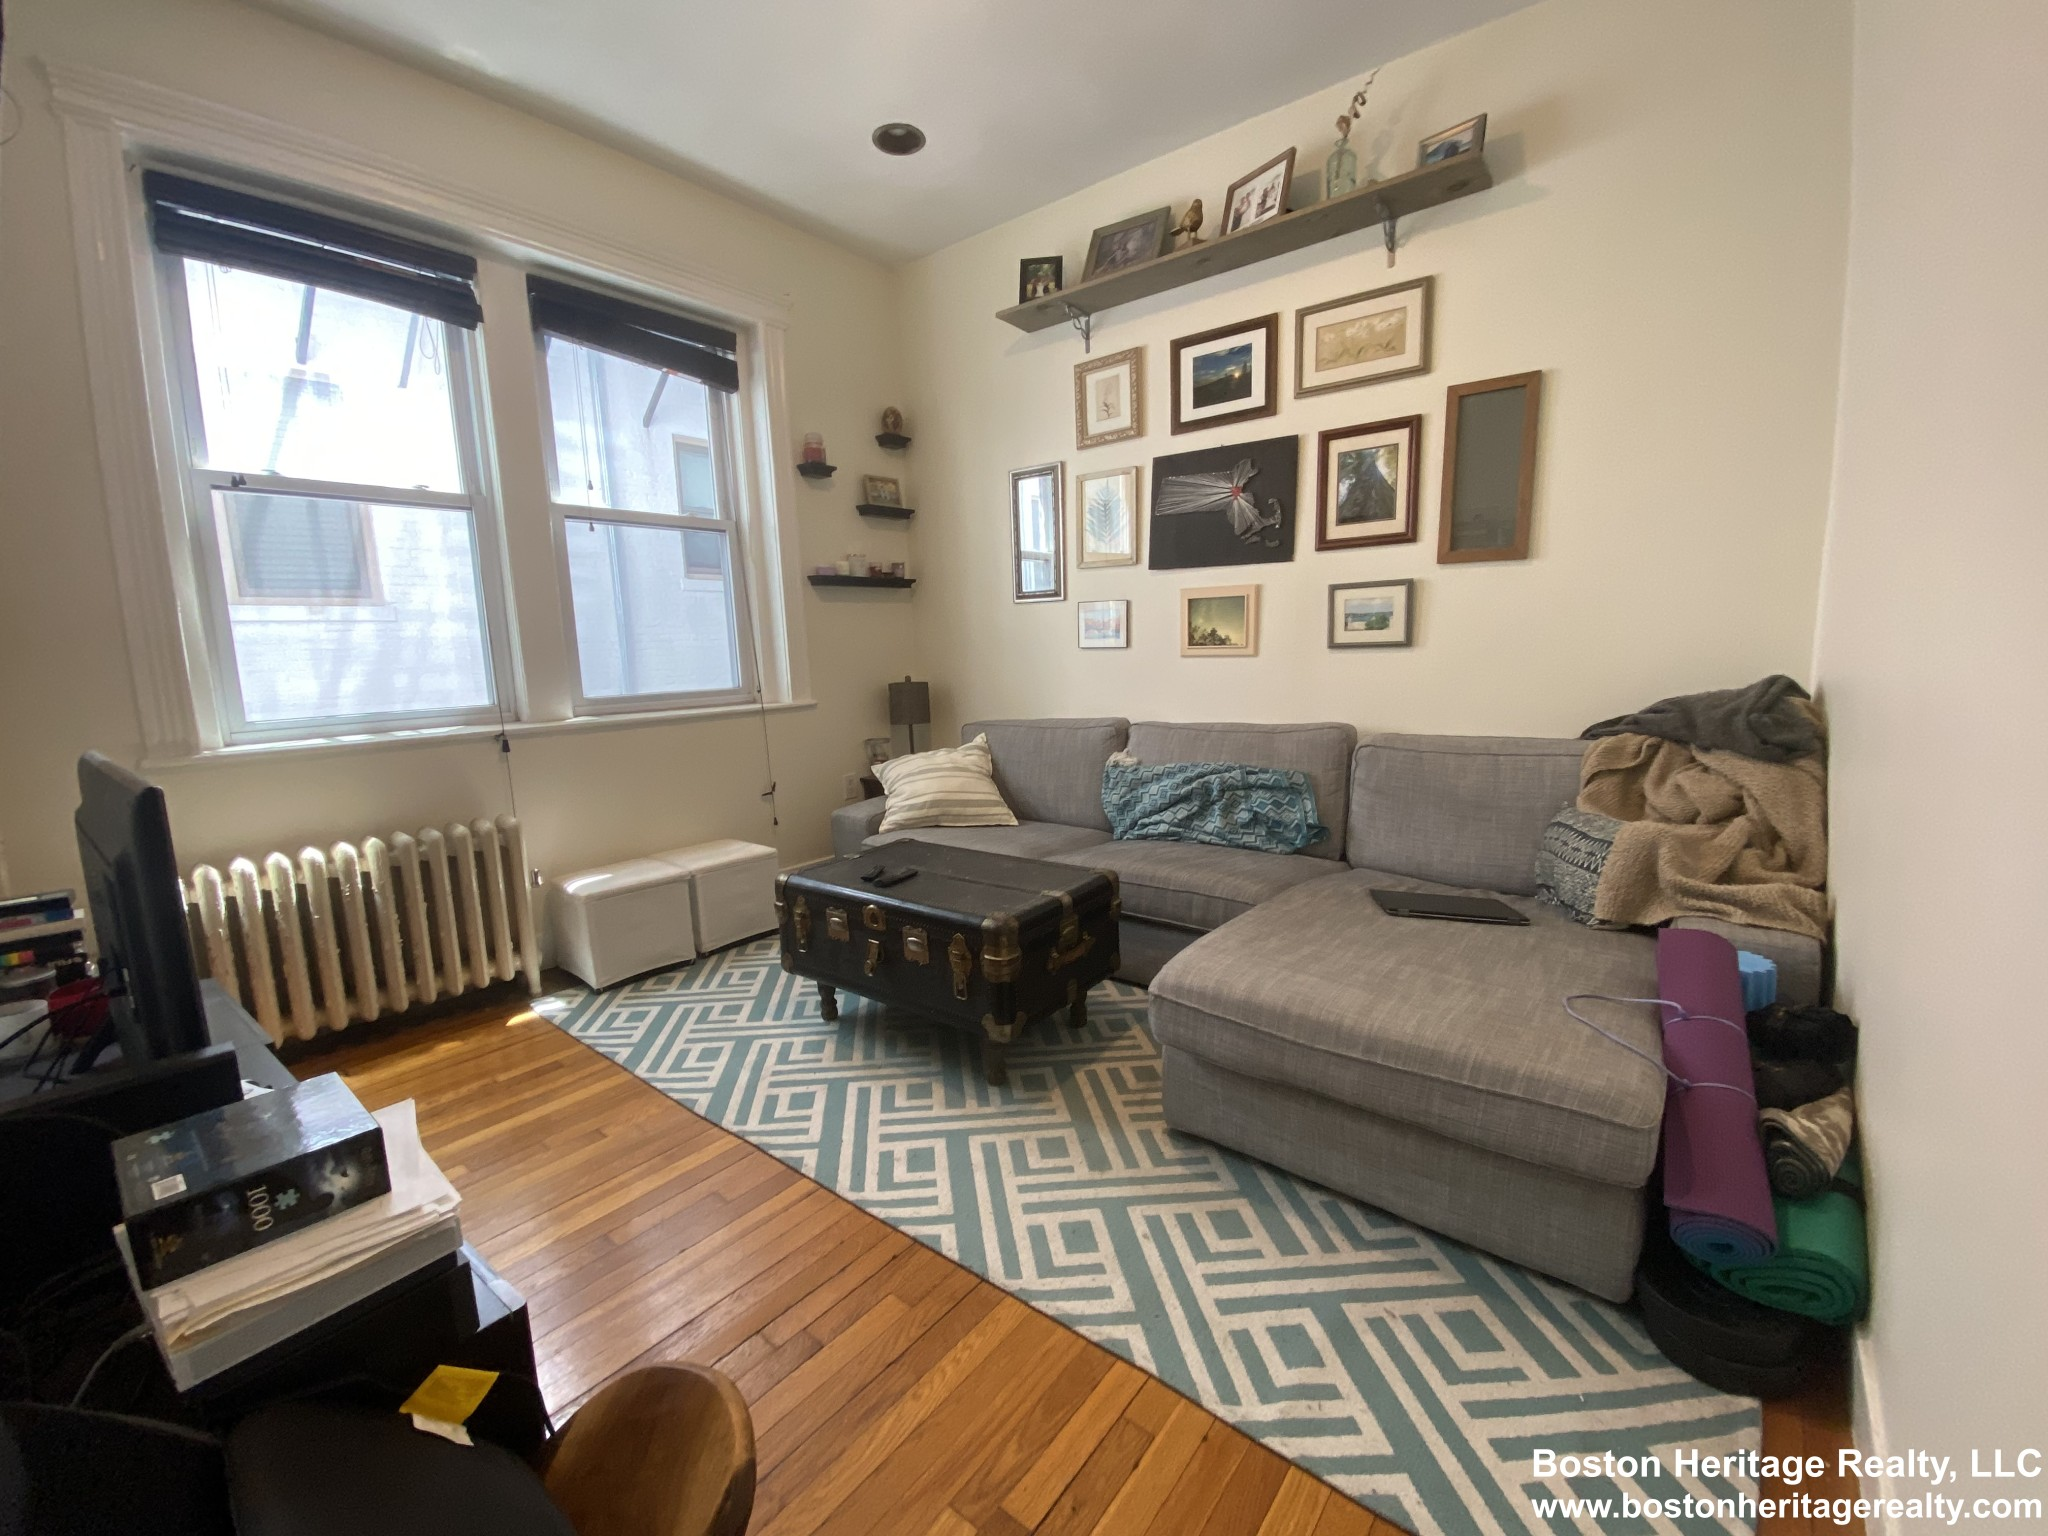 1 Bed, 1 Bath apartment in Boston, Fenway for $2,000